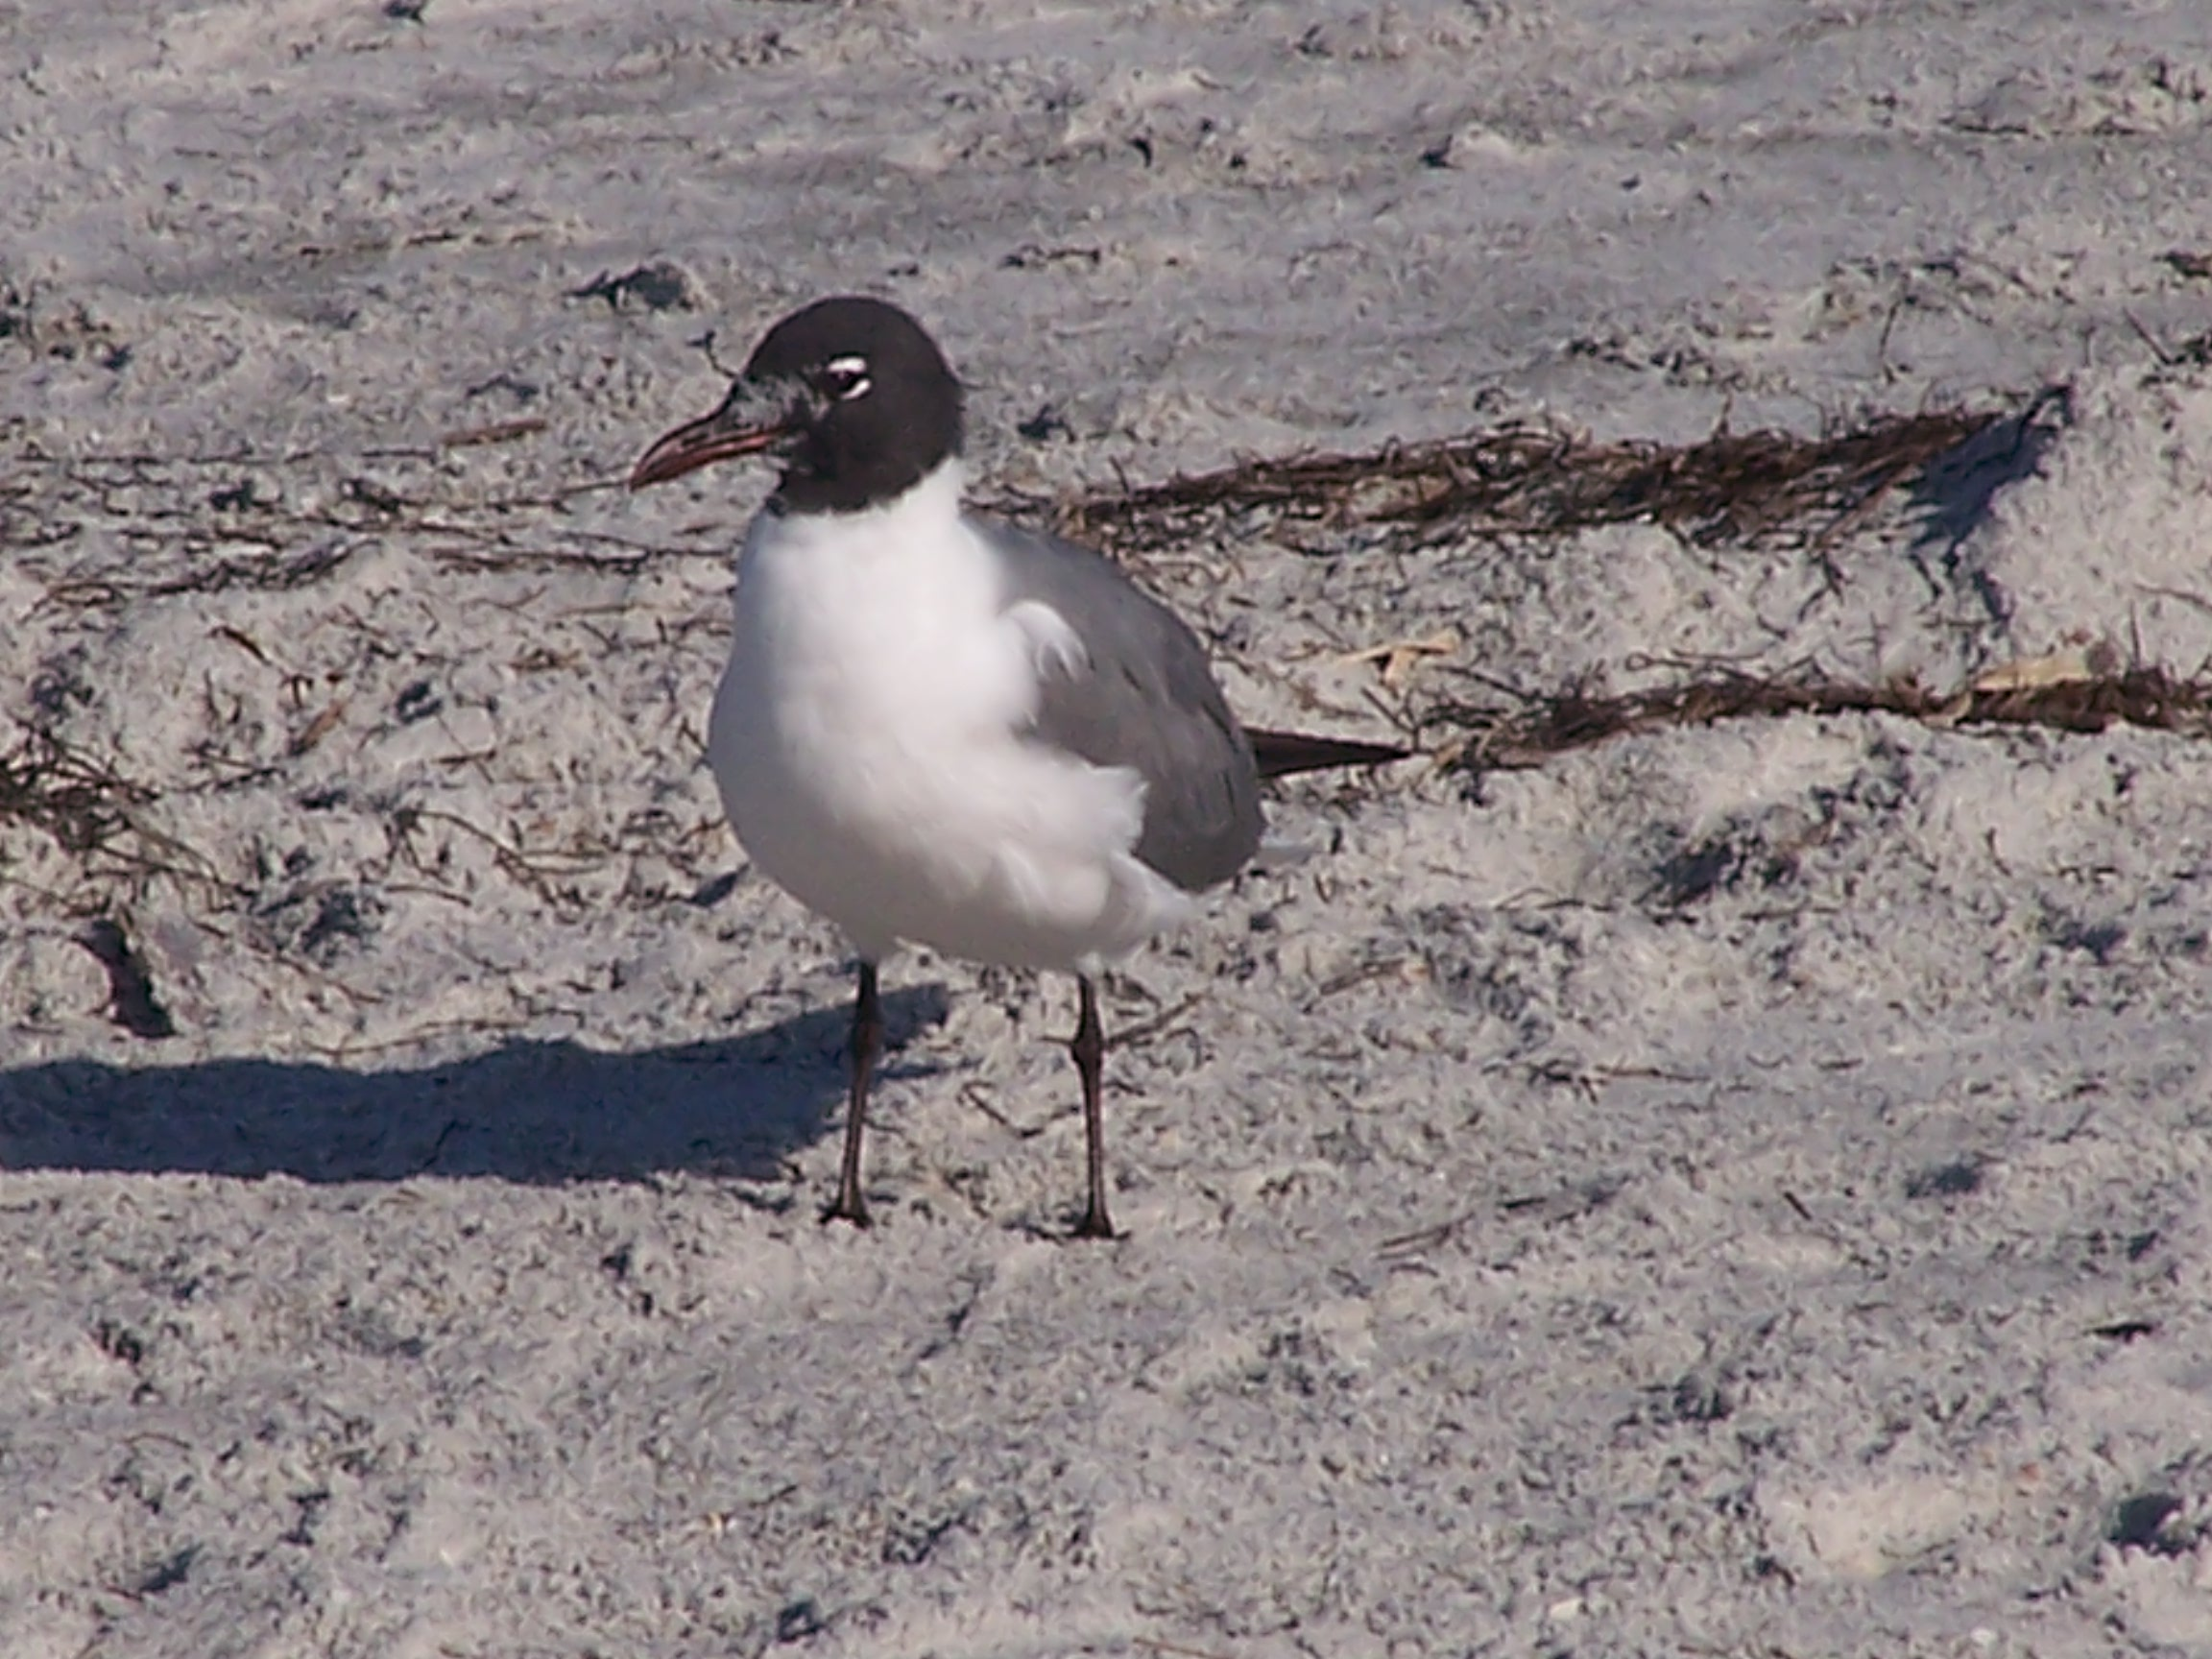 Laughing Gull photo © Steven P. Wickstrom